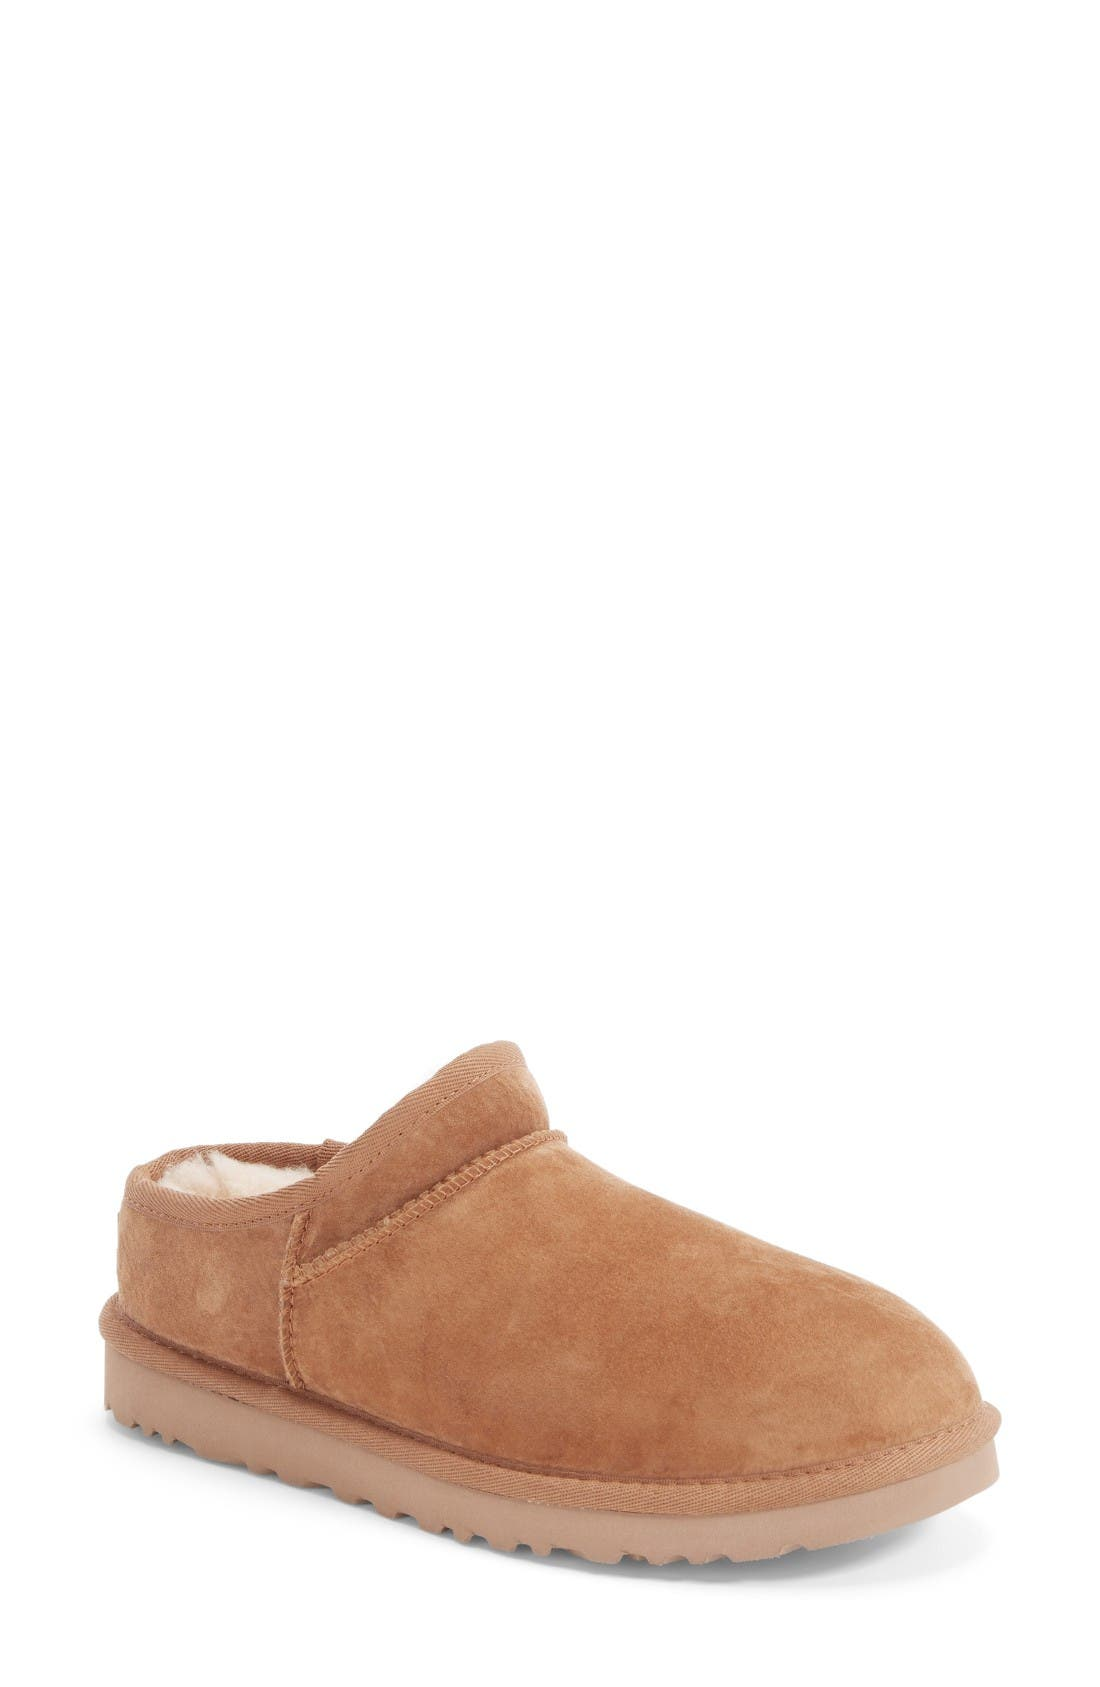 UGG   Classic Water Resistant Slipper